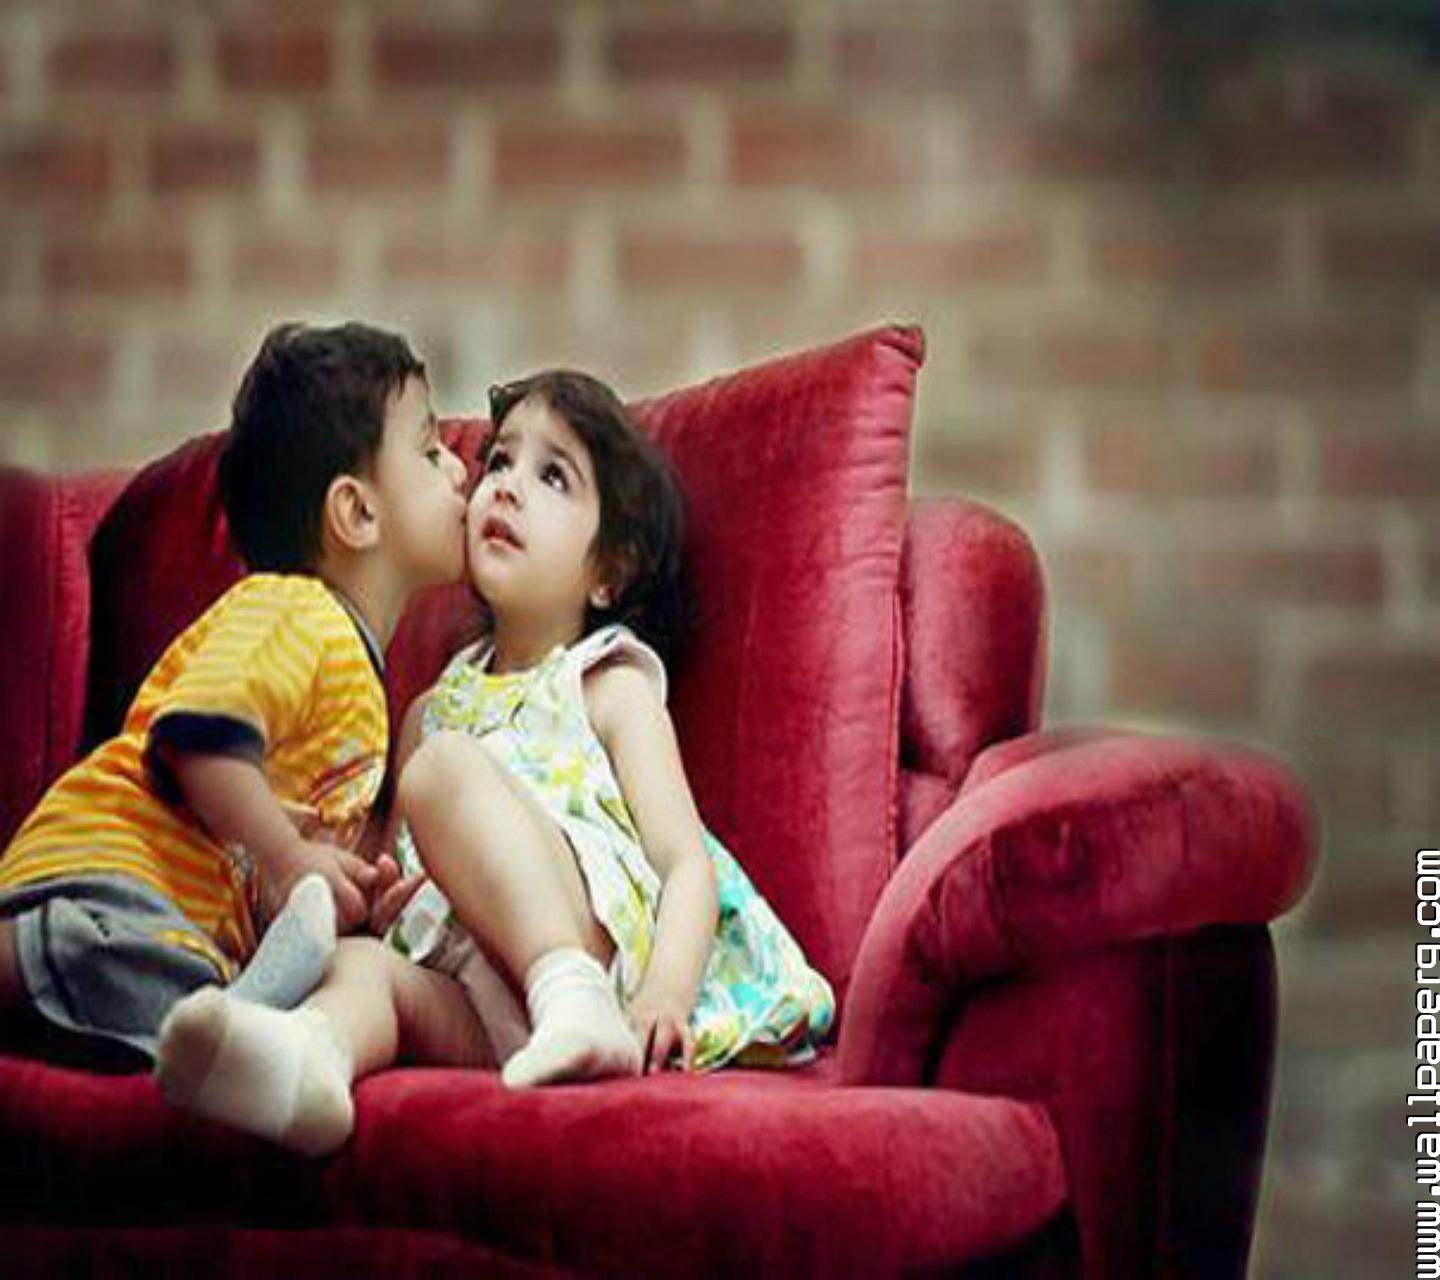 Love Baby Wallpaper Hd : Baby couple Kiss Wallpaper - impremedia.net